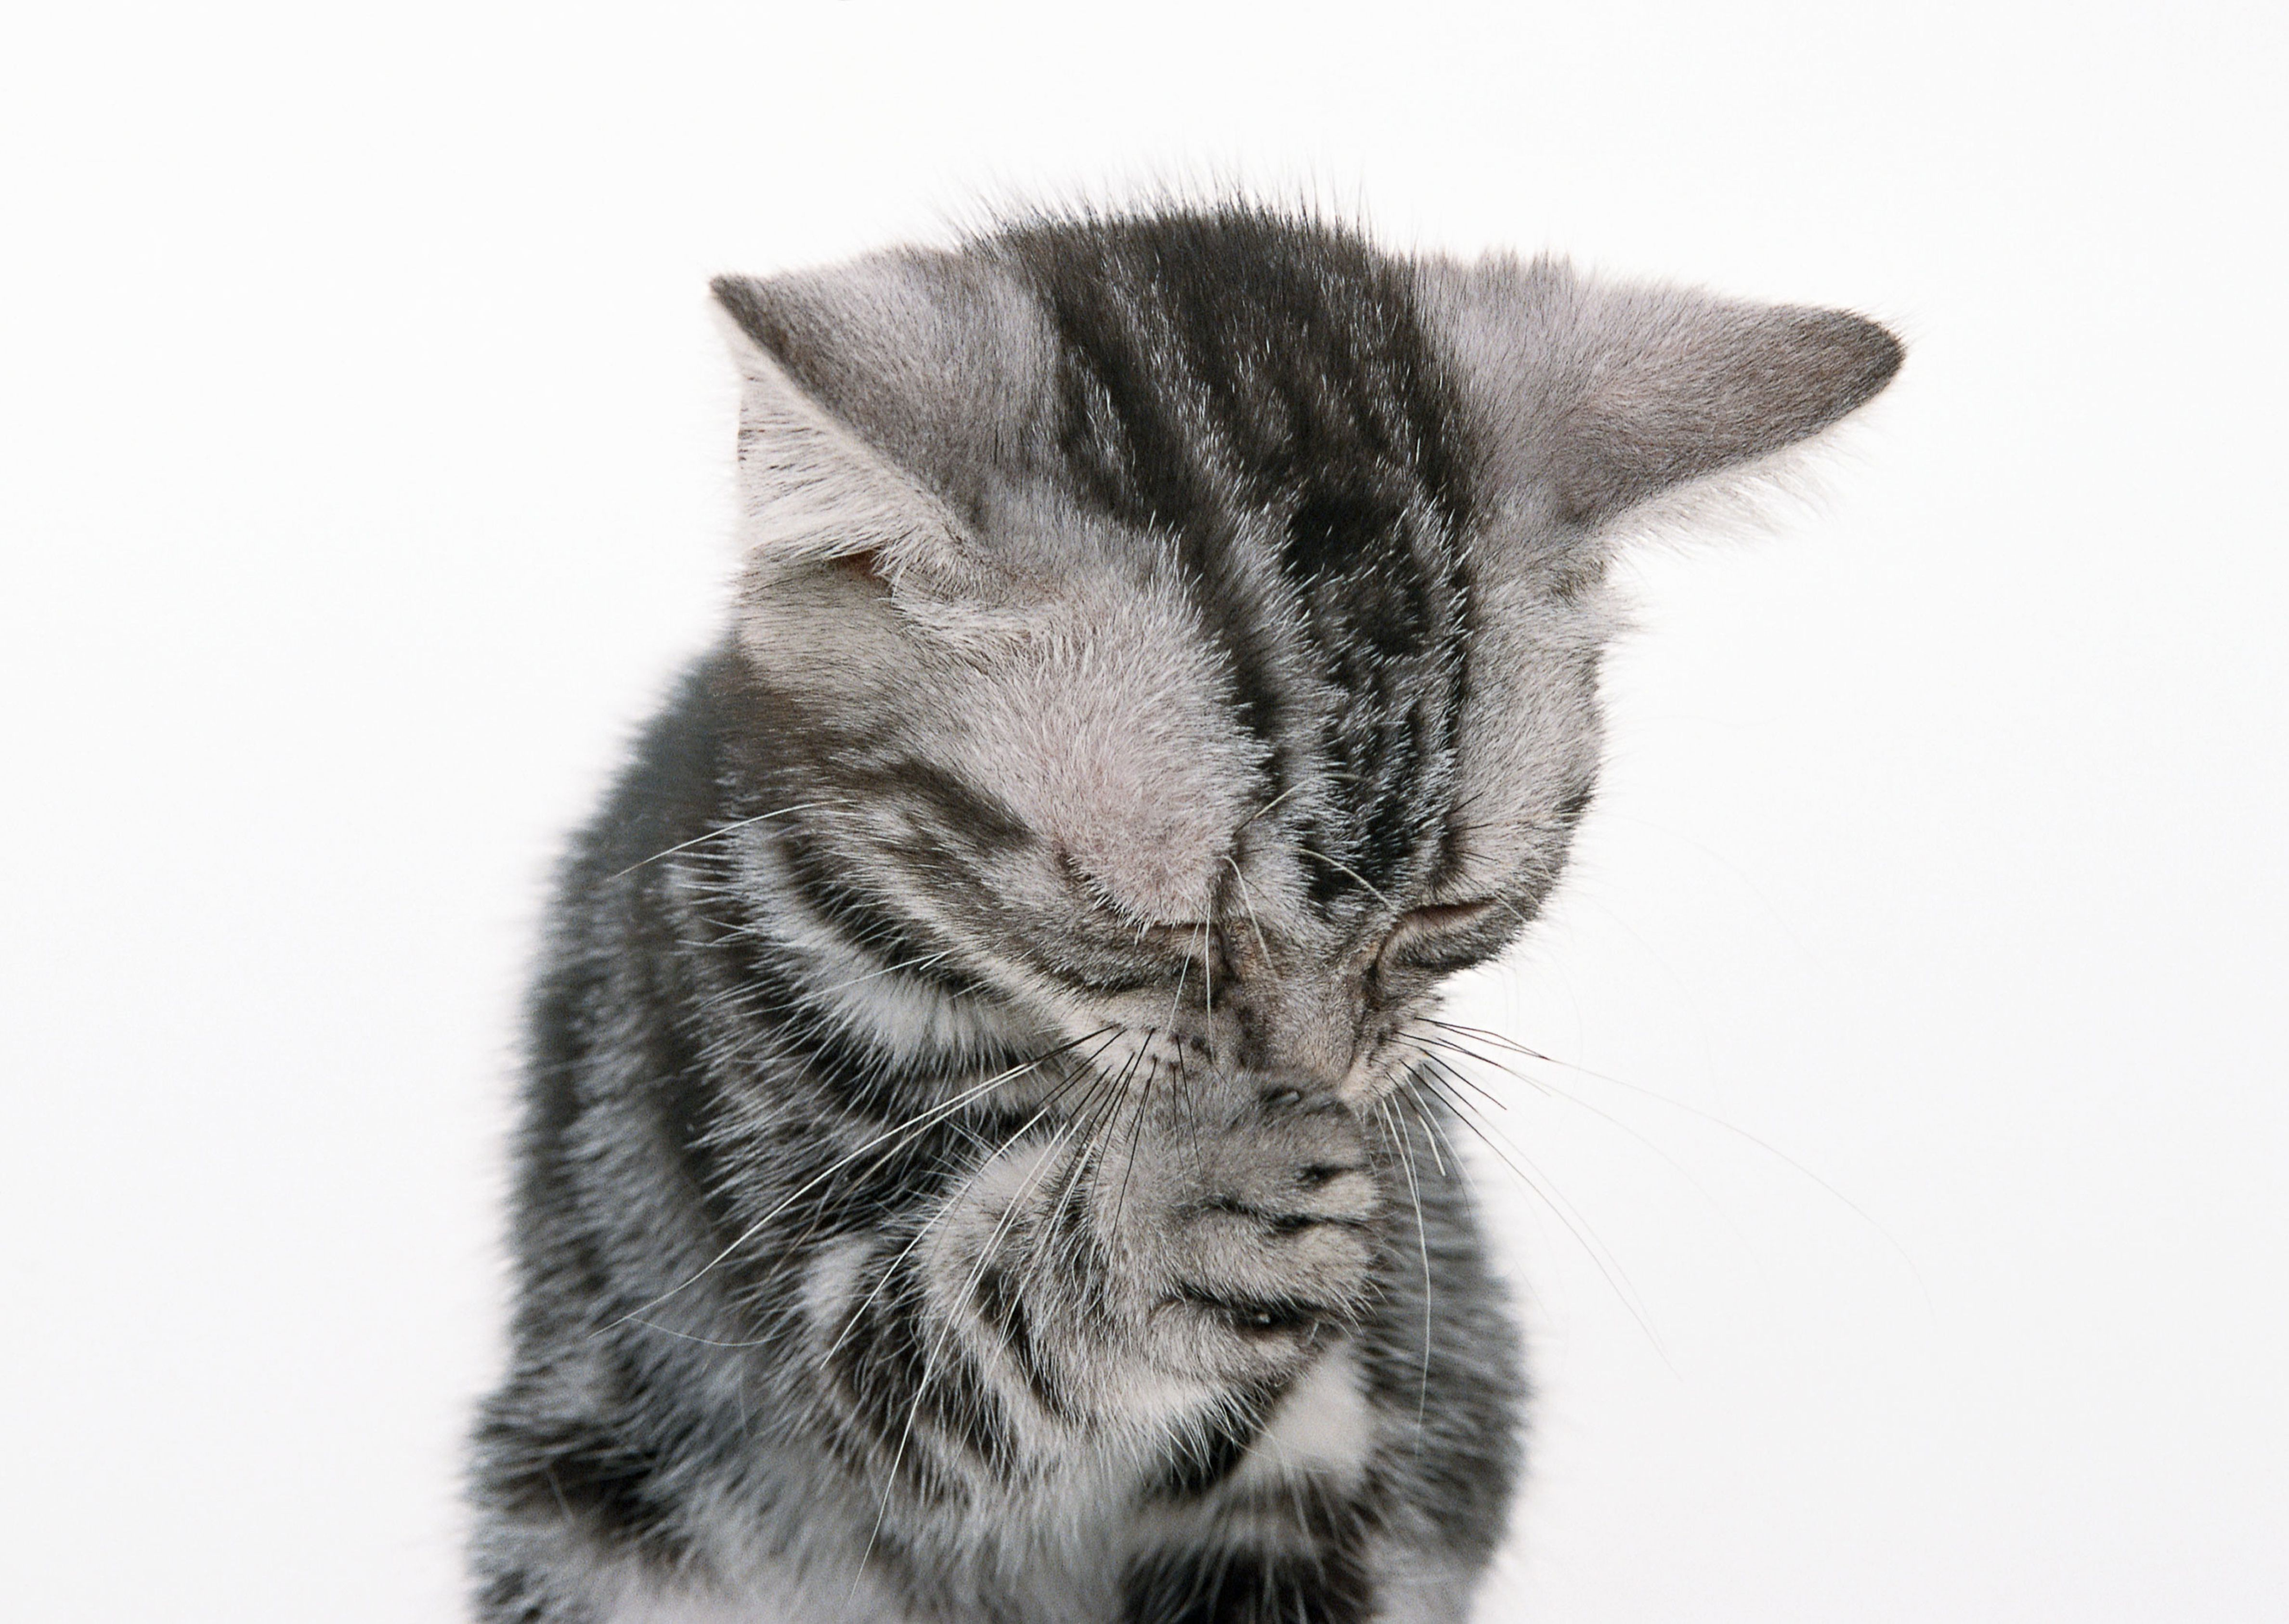 Why Kittens Sneeze and What to Do About It